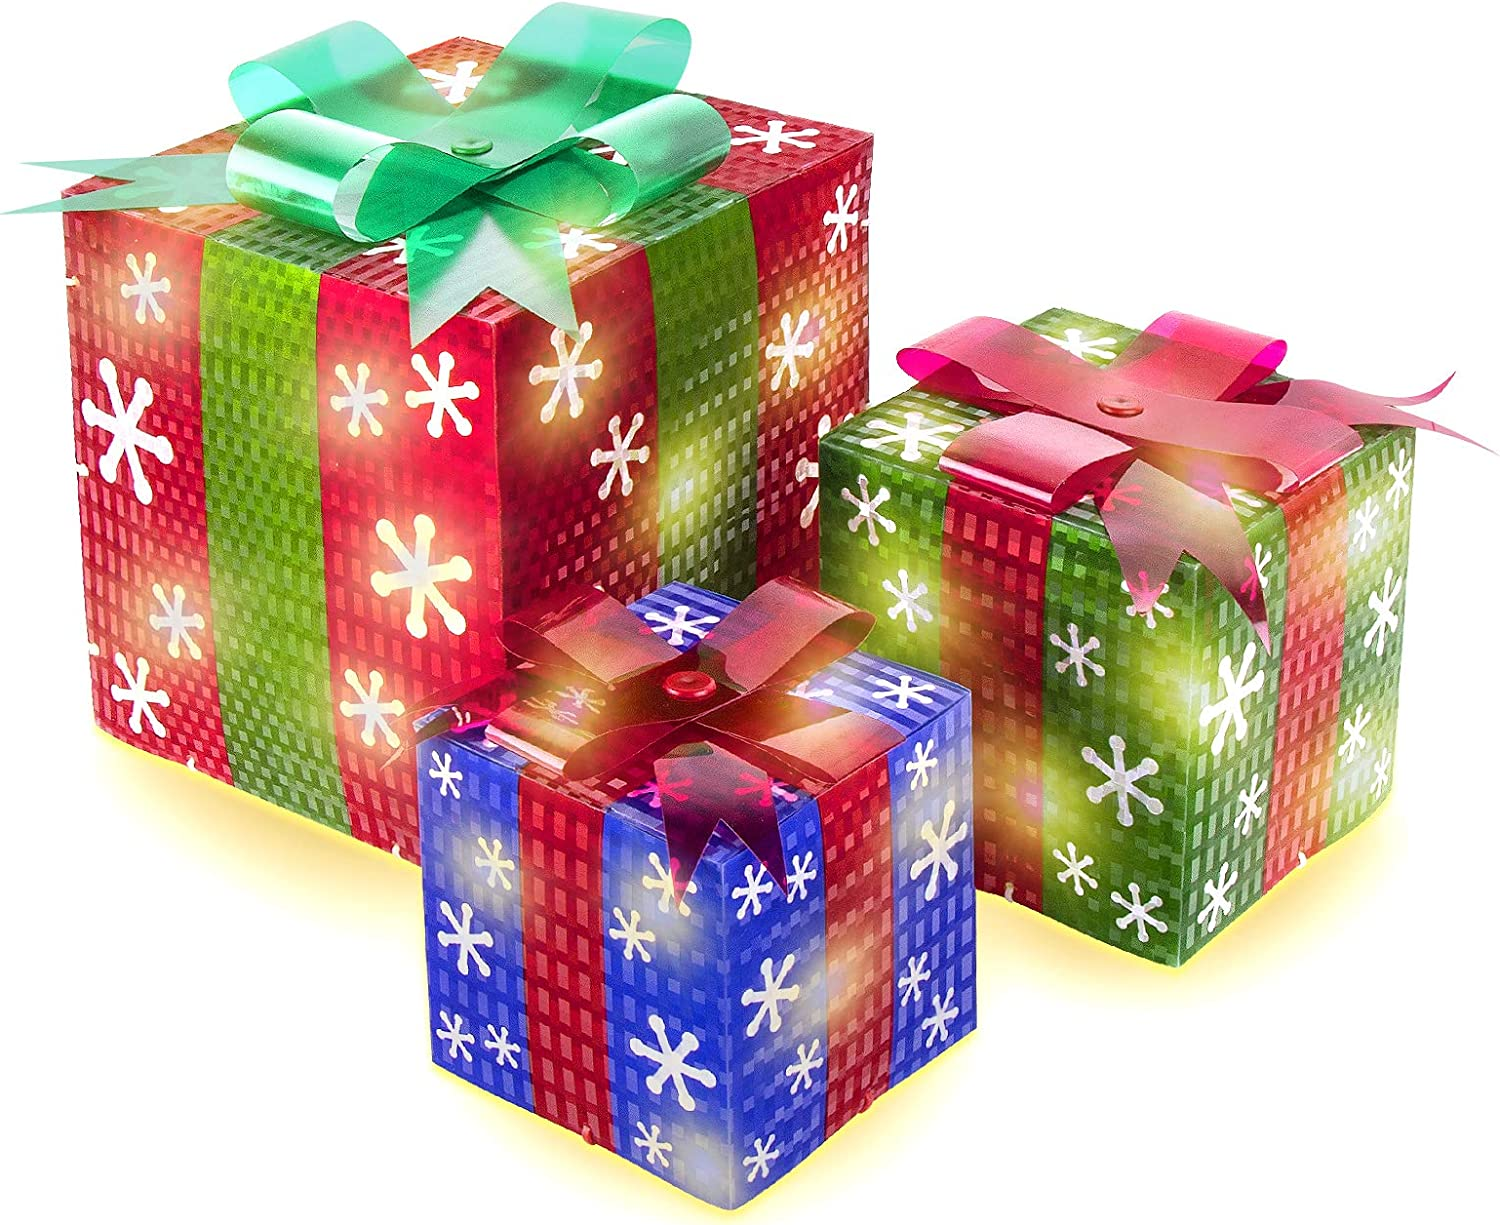 AmnoAmno Christmas Lighted Gift Boxes Set of 3 Presents Boxes Decorative Outdoor Xmas Indoor Home Decoration Snowflake Red Green Blue Light Up Boxes Lawn Yard Decor